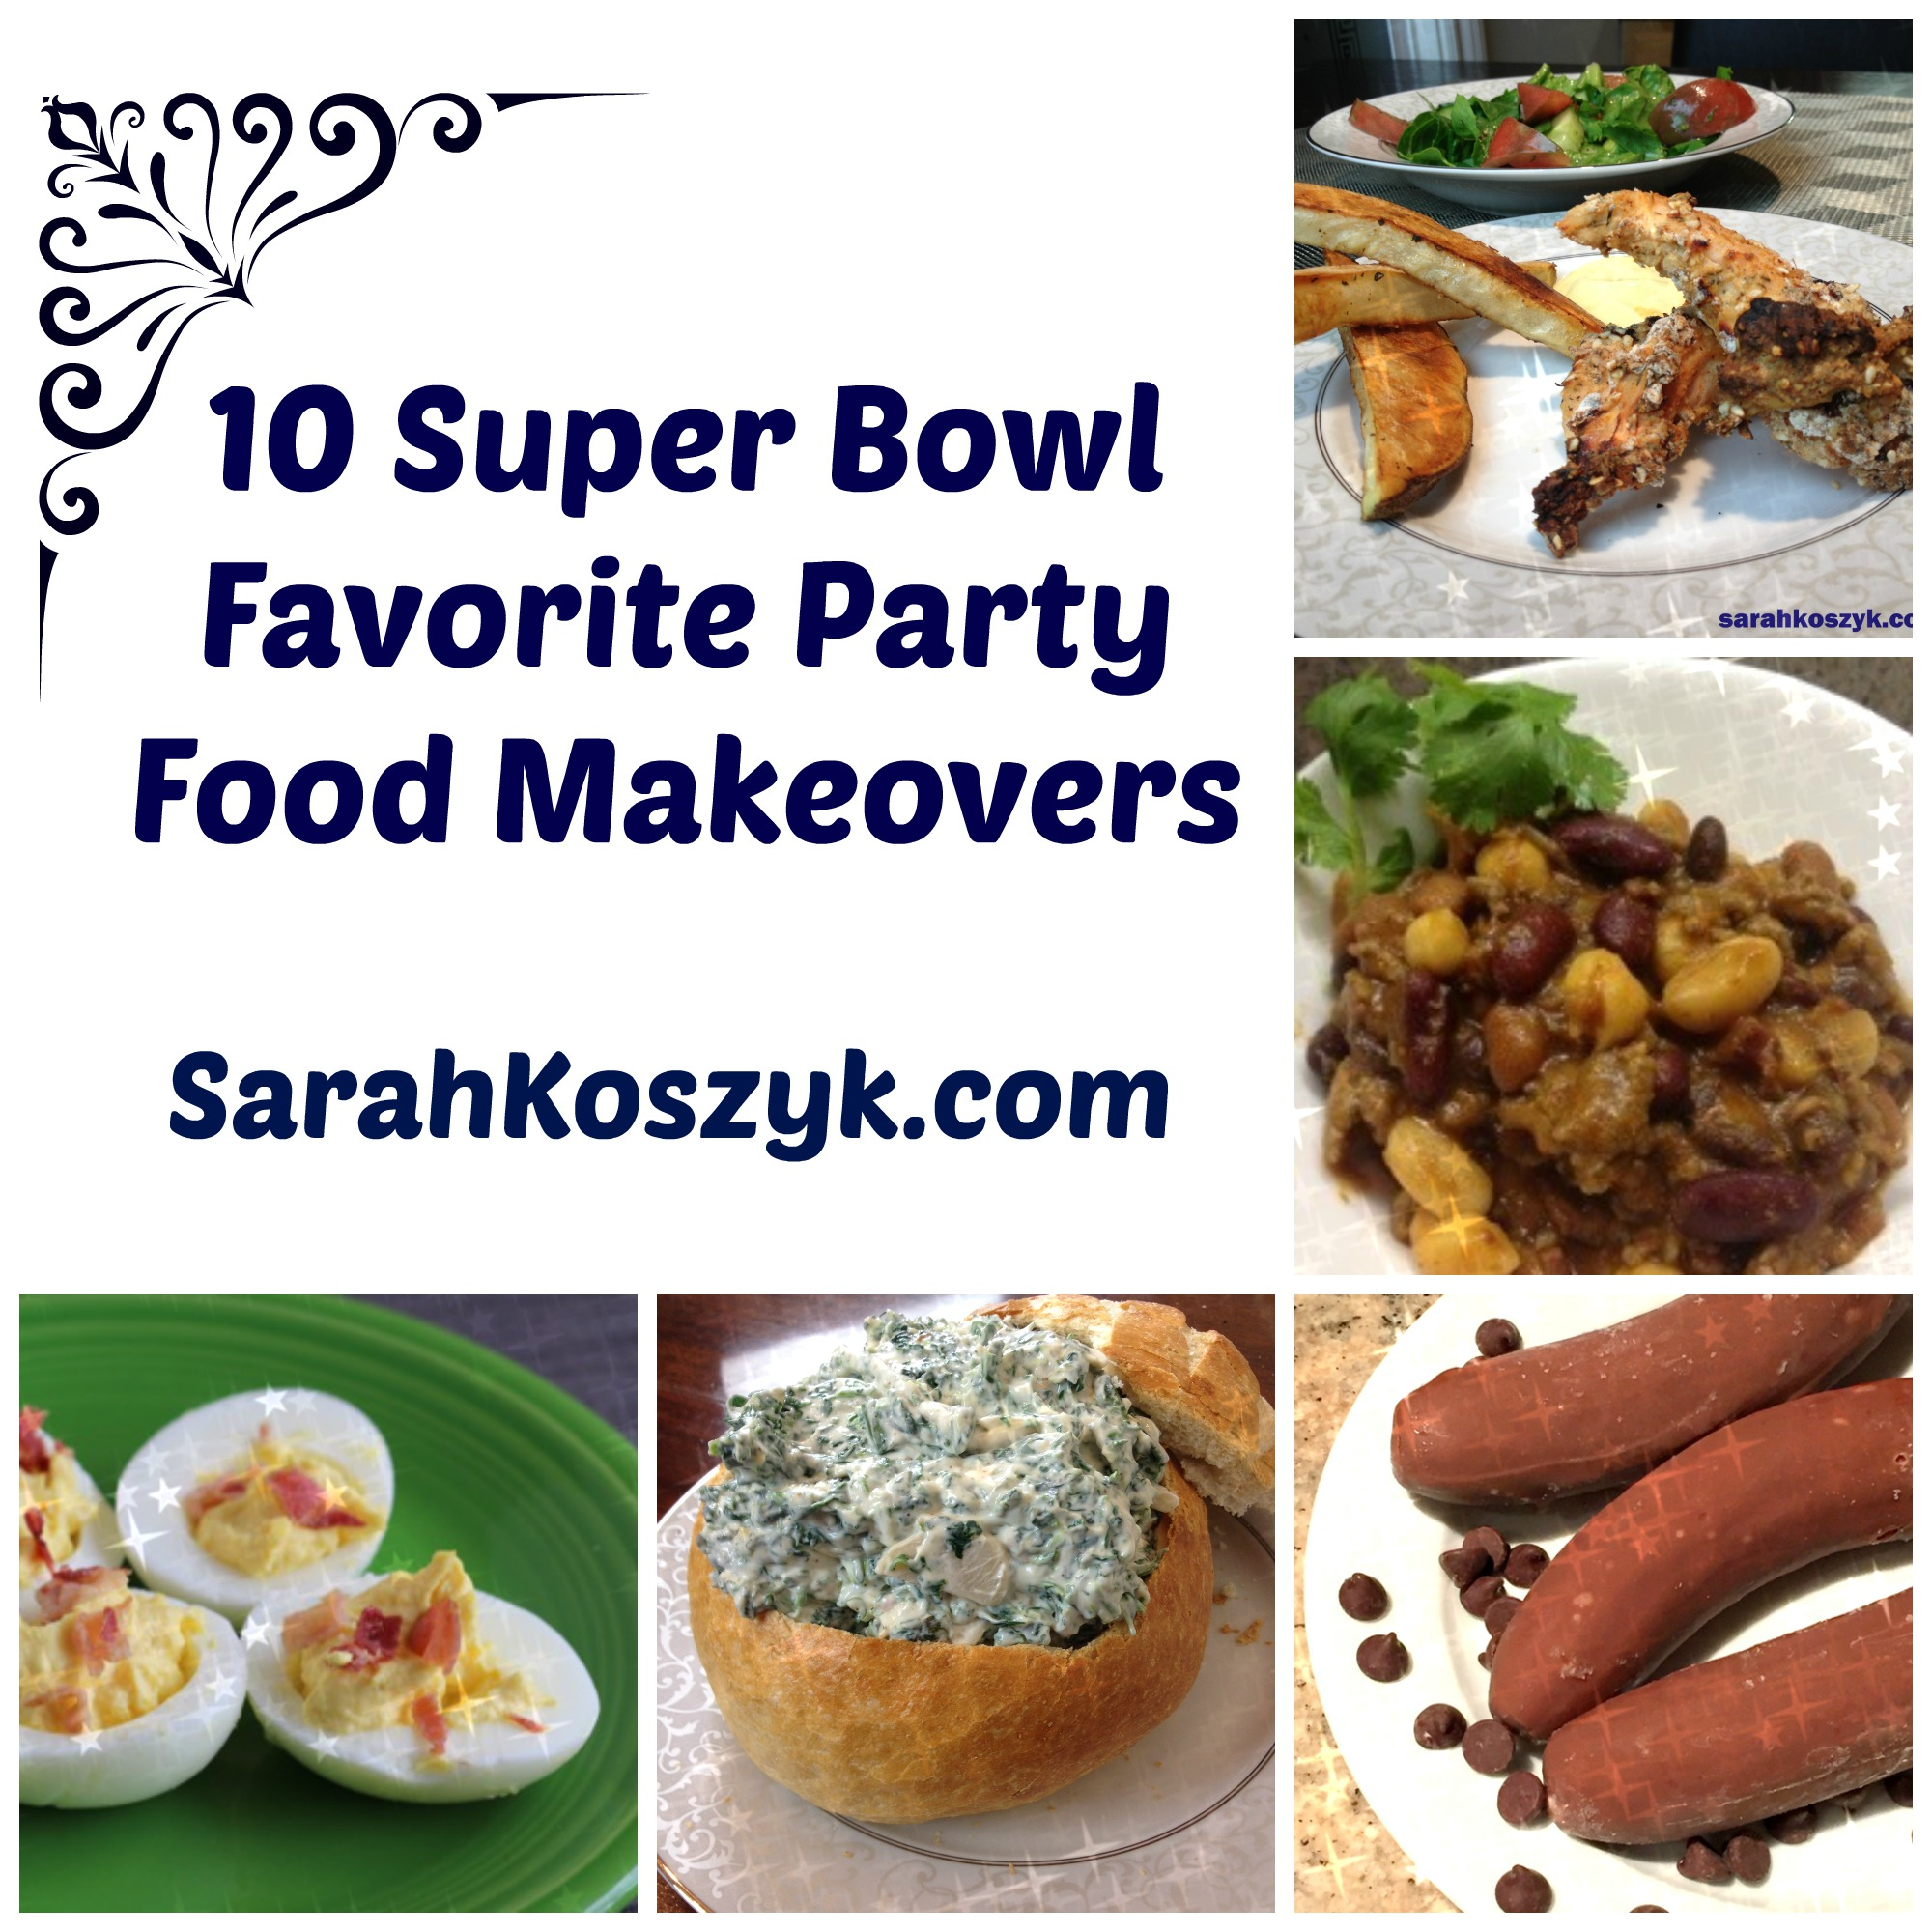 10 Super Bowl Favorite Party Food Makeovers